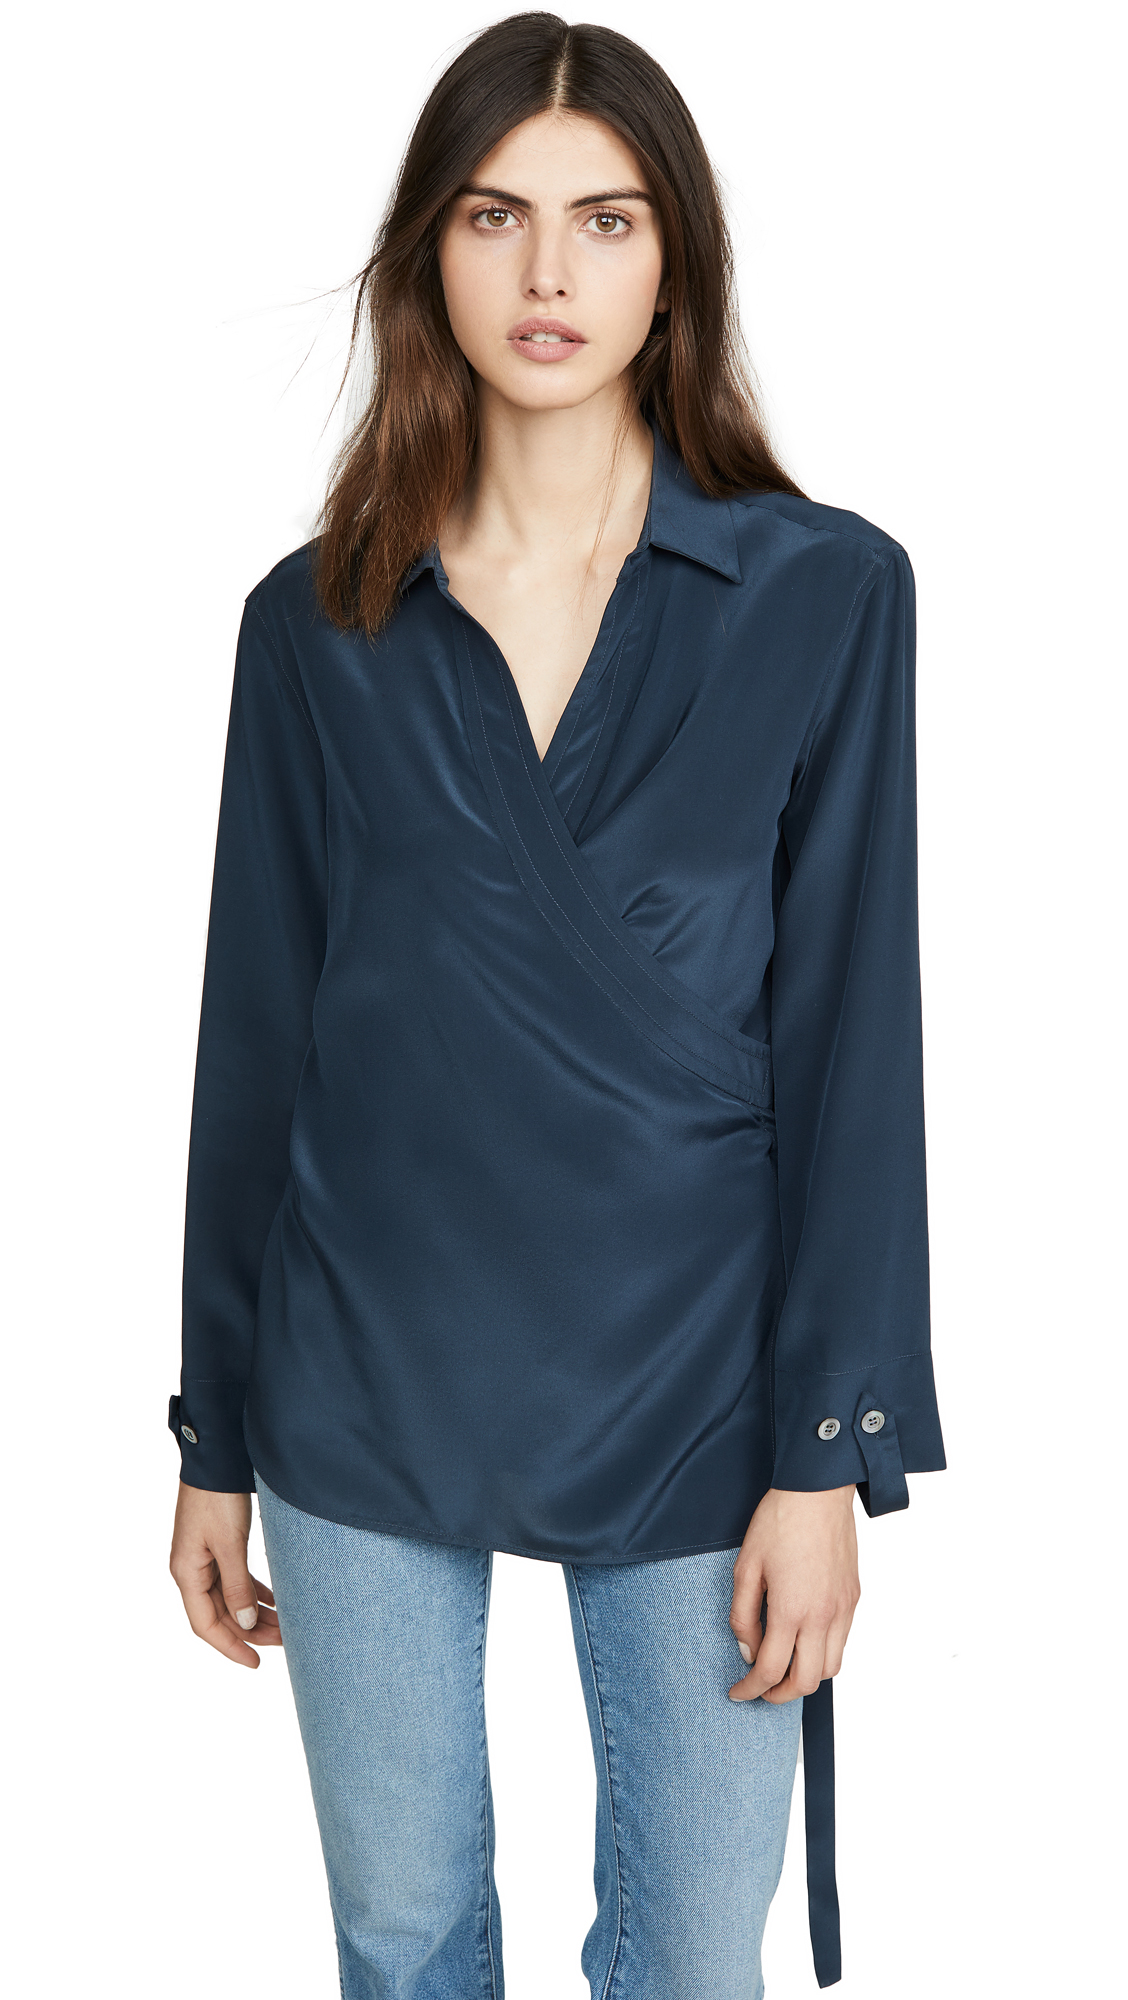 TRE by Natalie Ratabesi Long Sleeve Collared Silk Blouse – 60% Off Sale